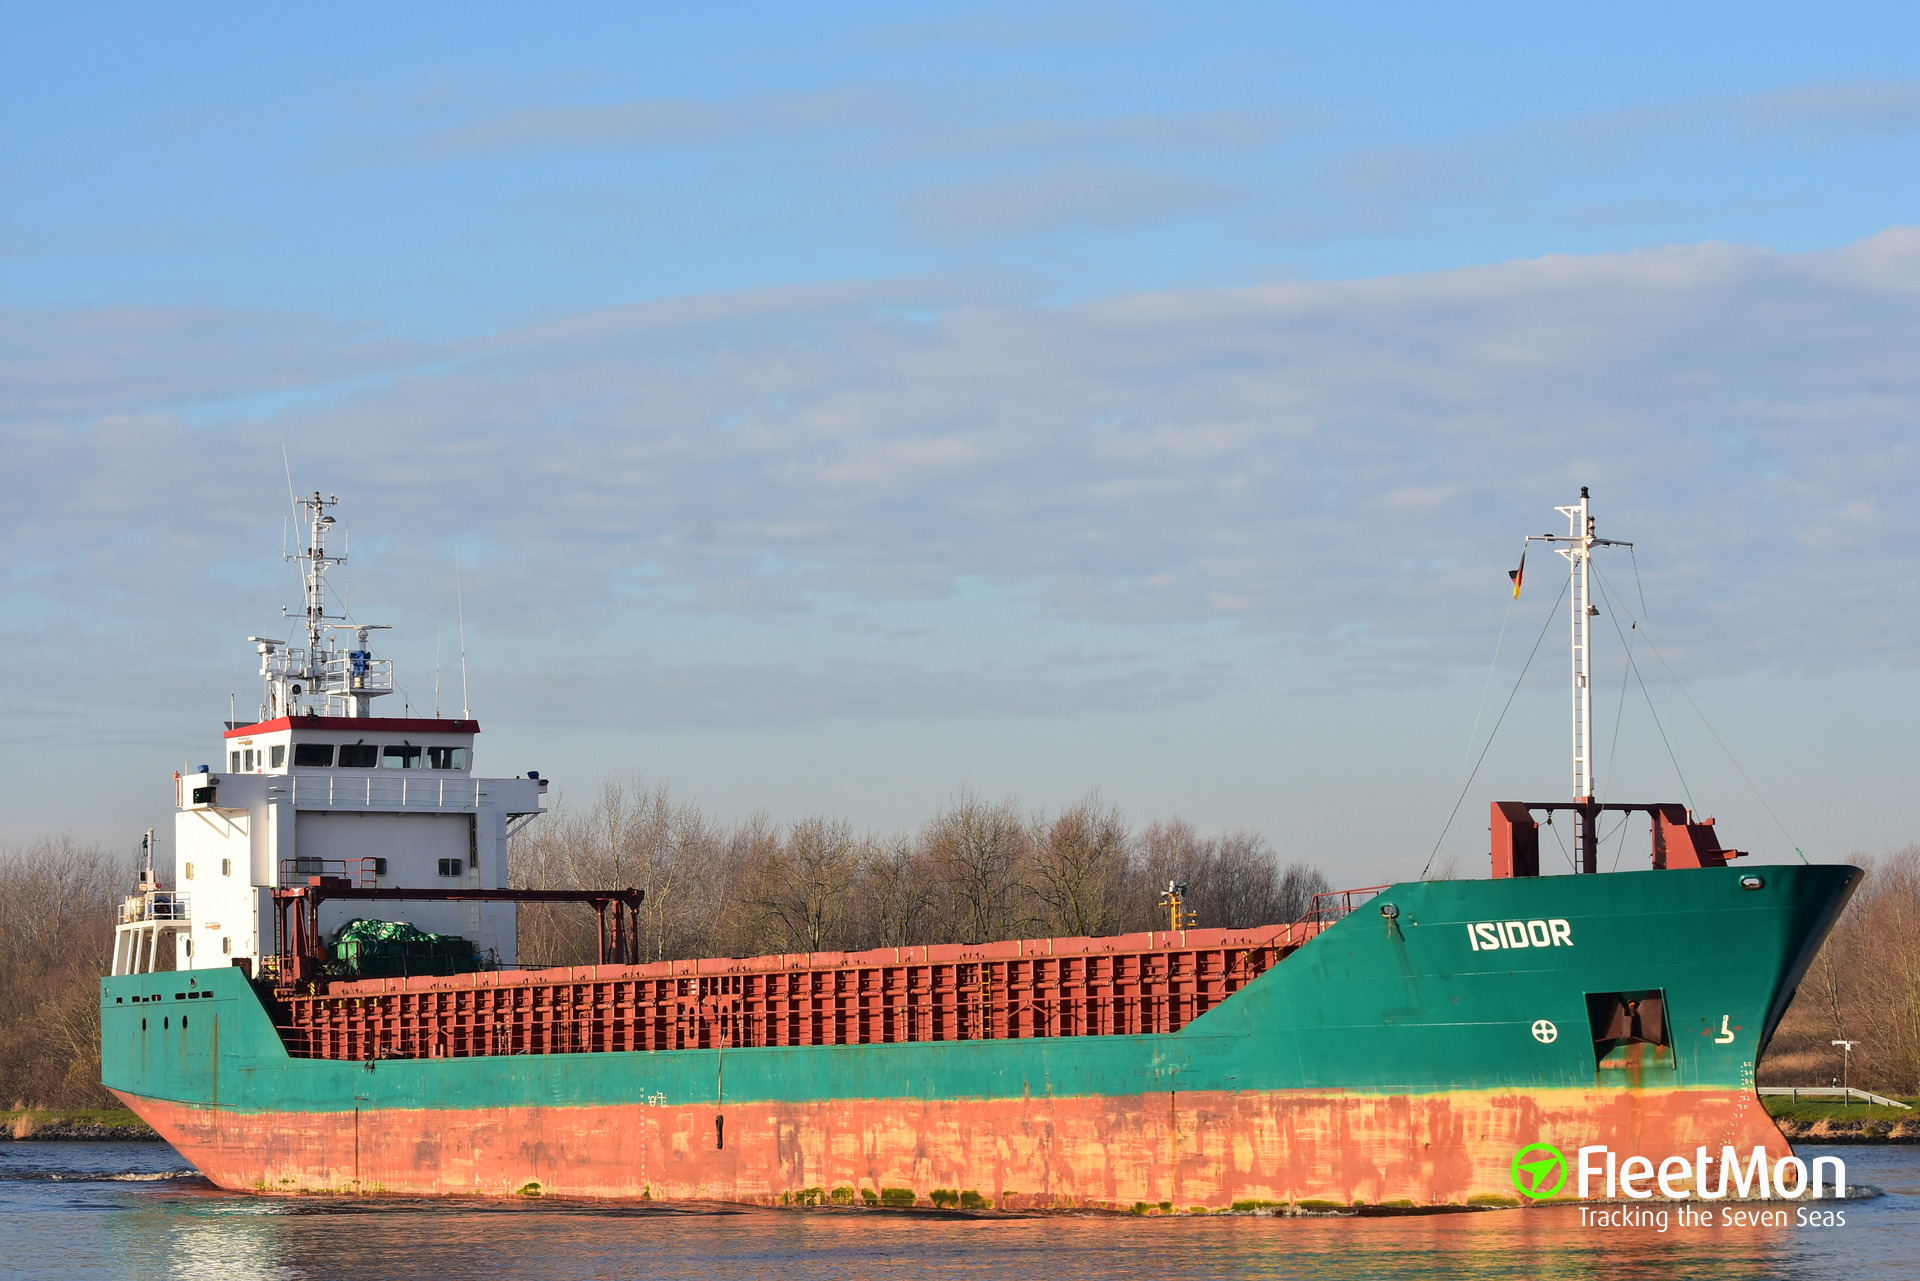 Freighter Isidor under repairs after pump failure, Kiel